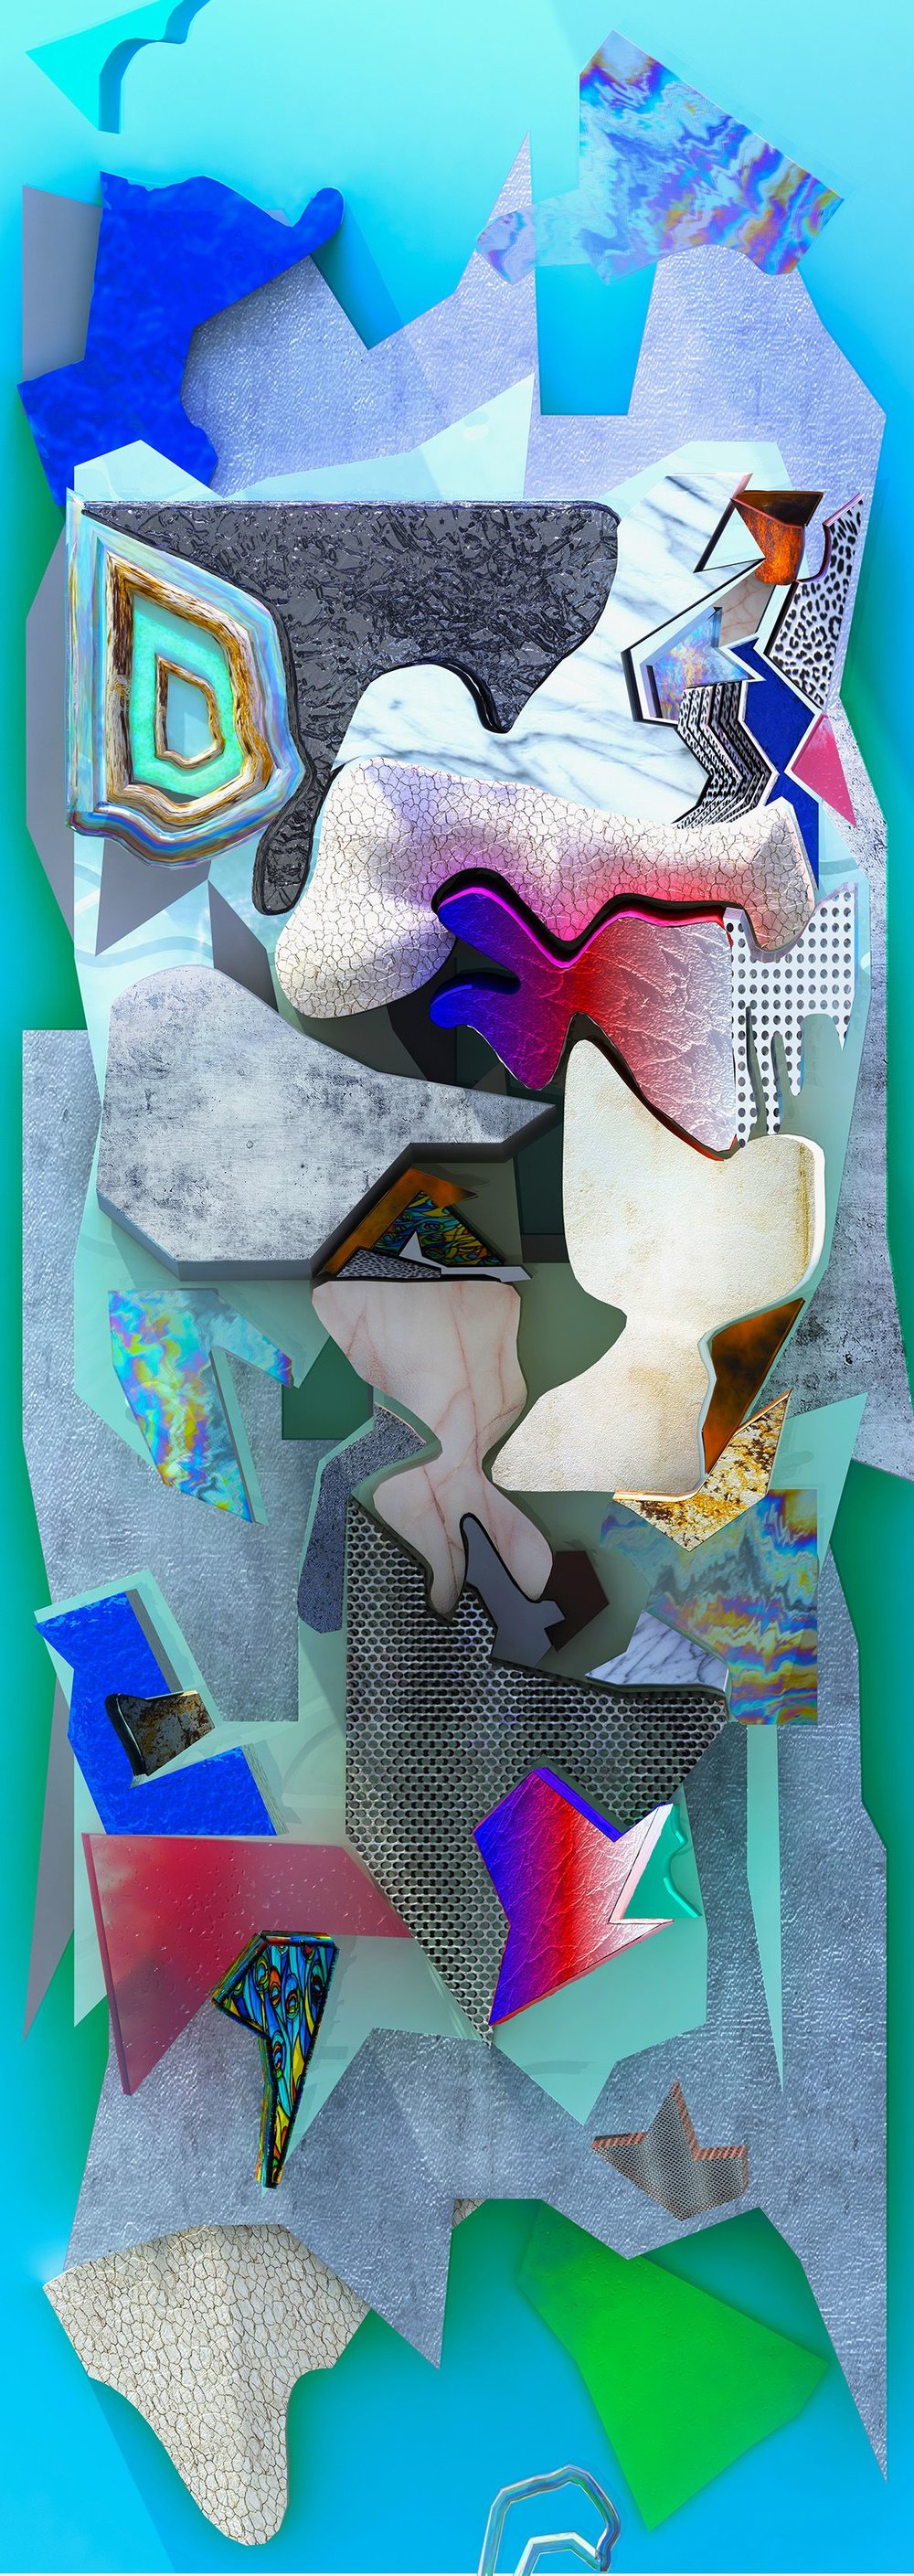 Eva-Papamargariti-Fake-Fragments-10x29-compressor.jpg